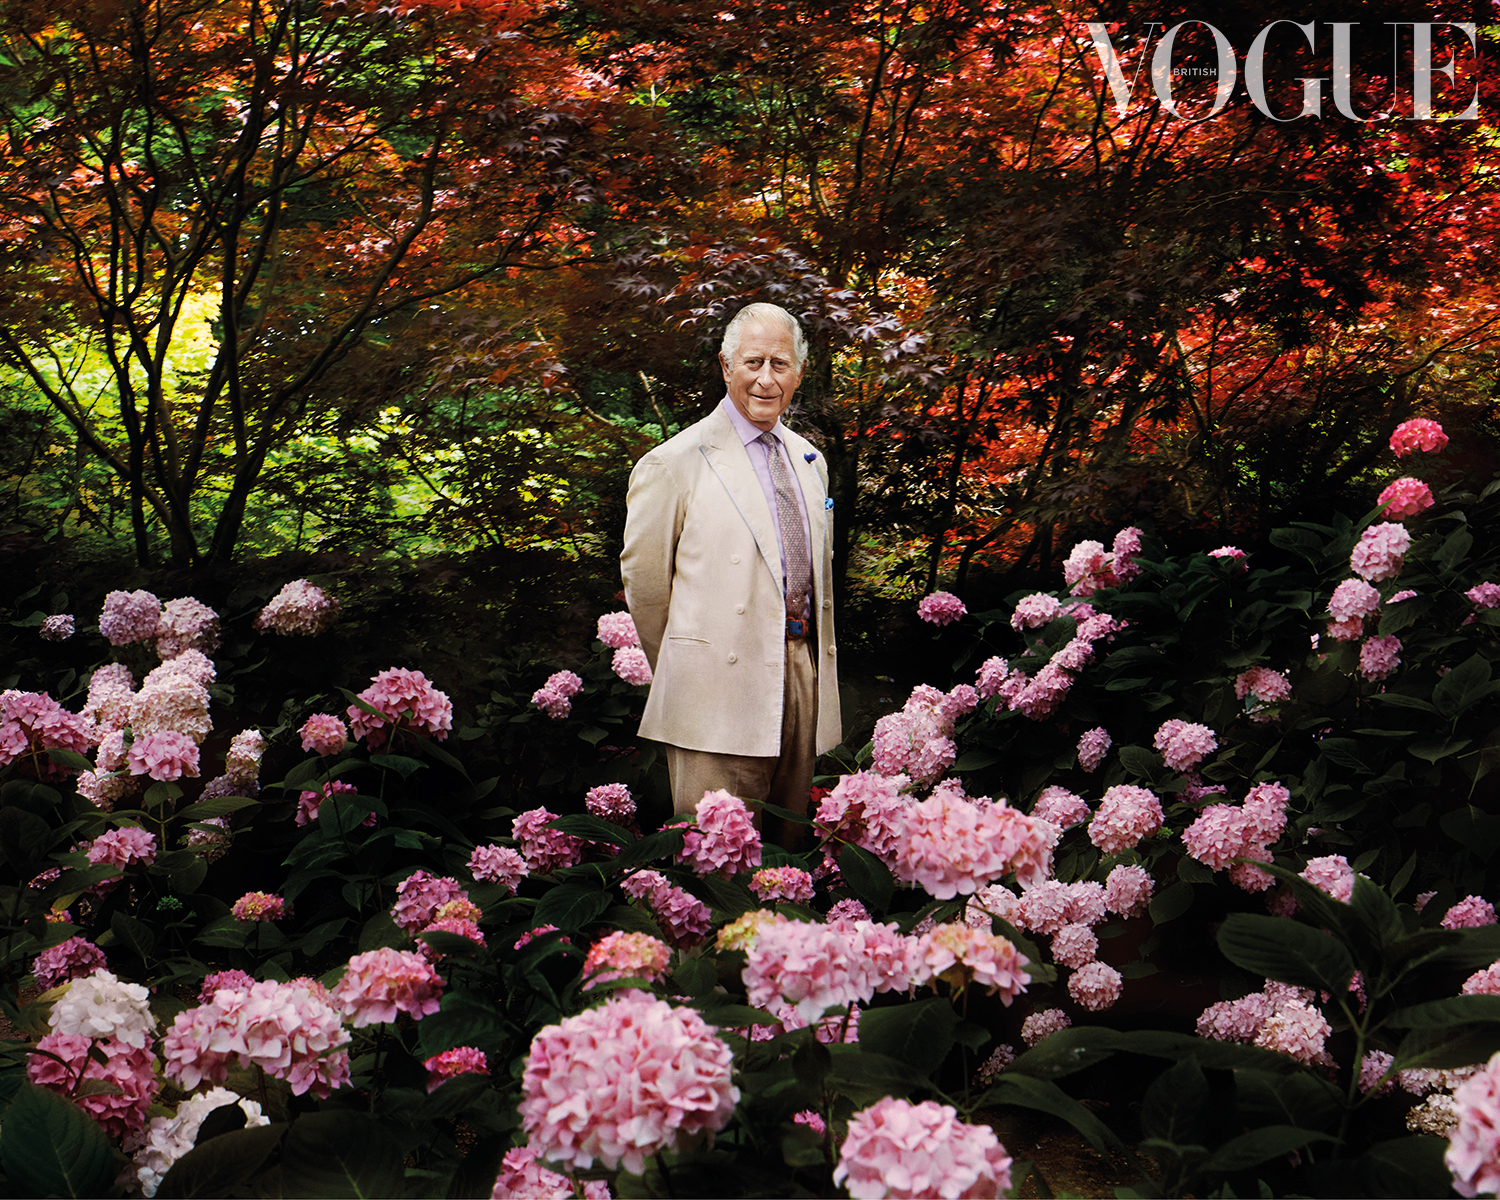 Prince Charles, Prince of Wales - The December issue of British Vogue, available via digital download and on newsstands Friday 6th November